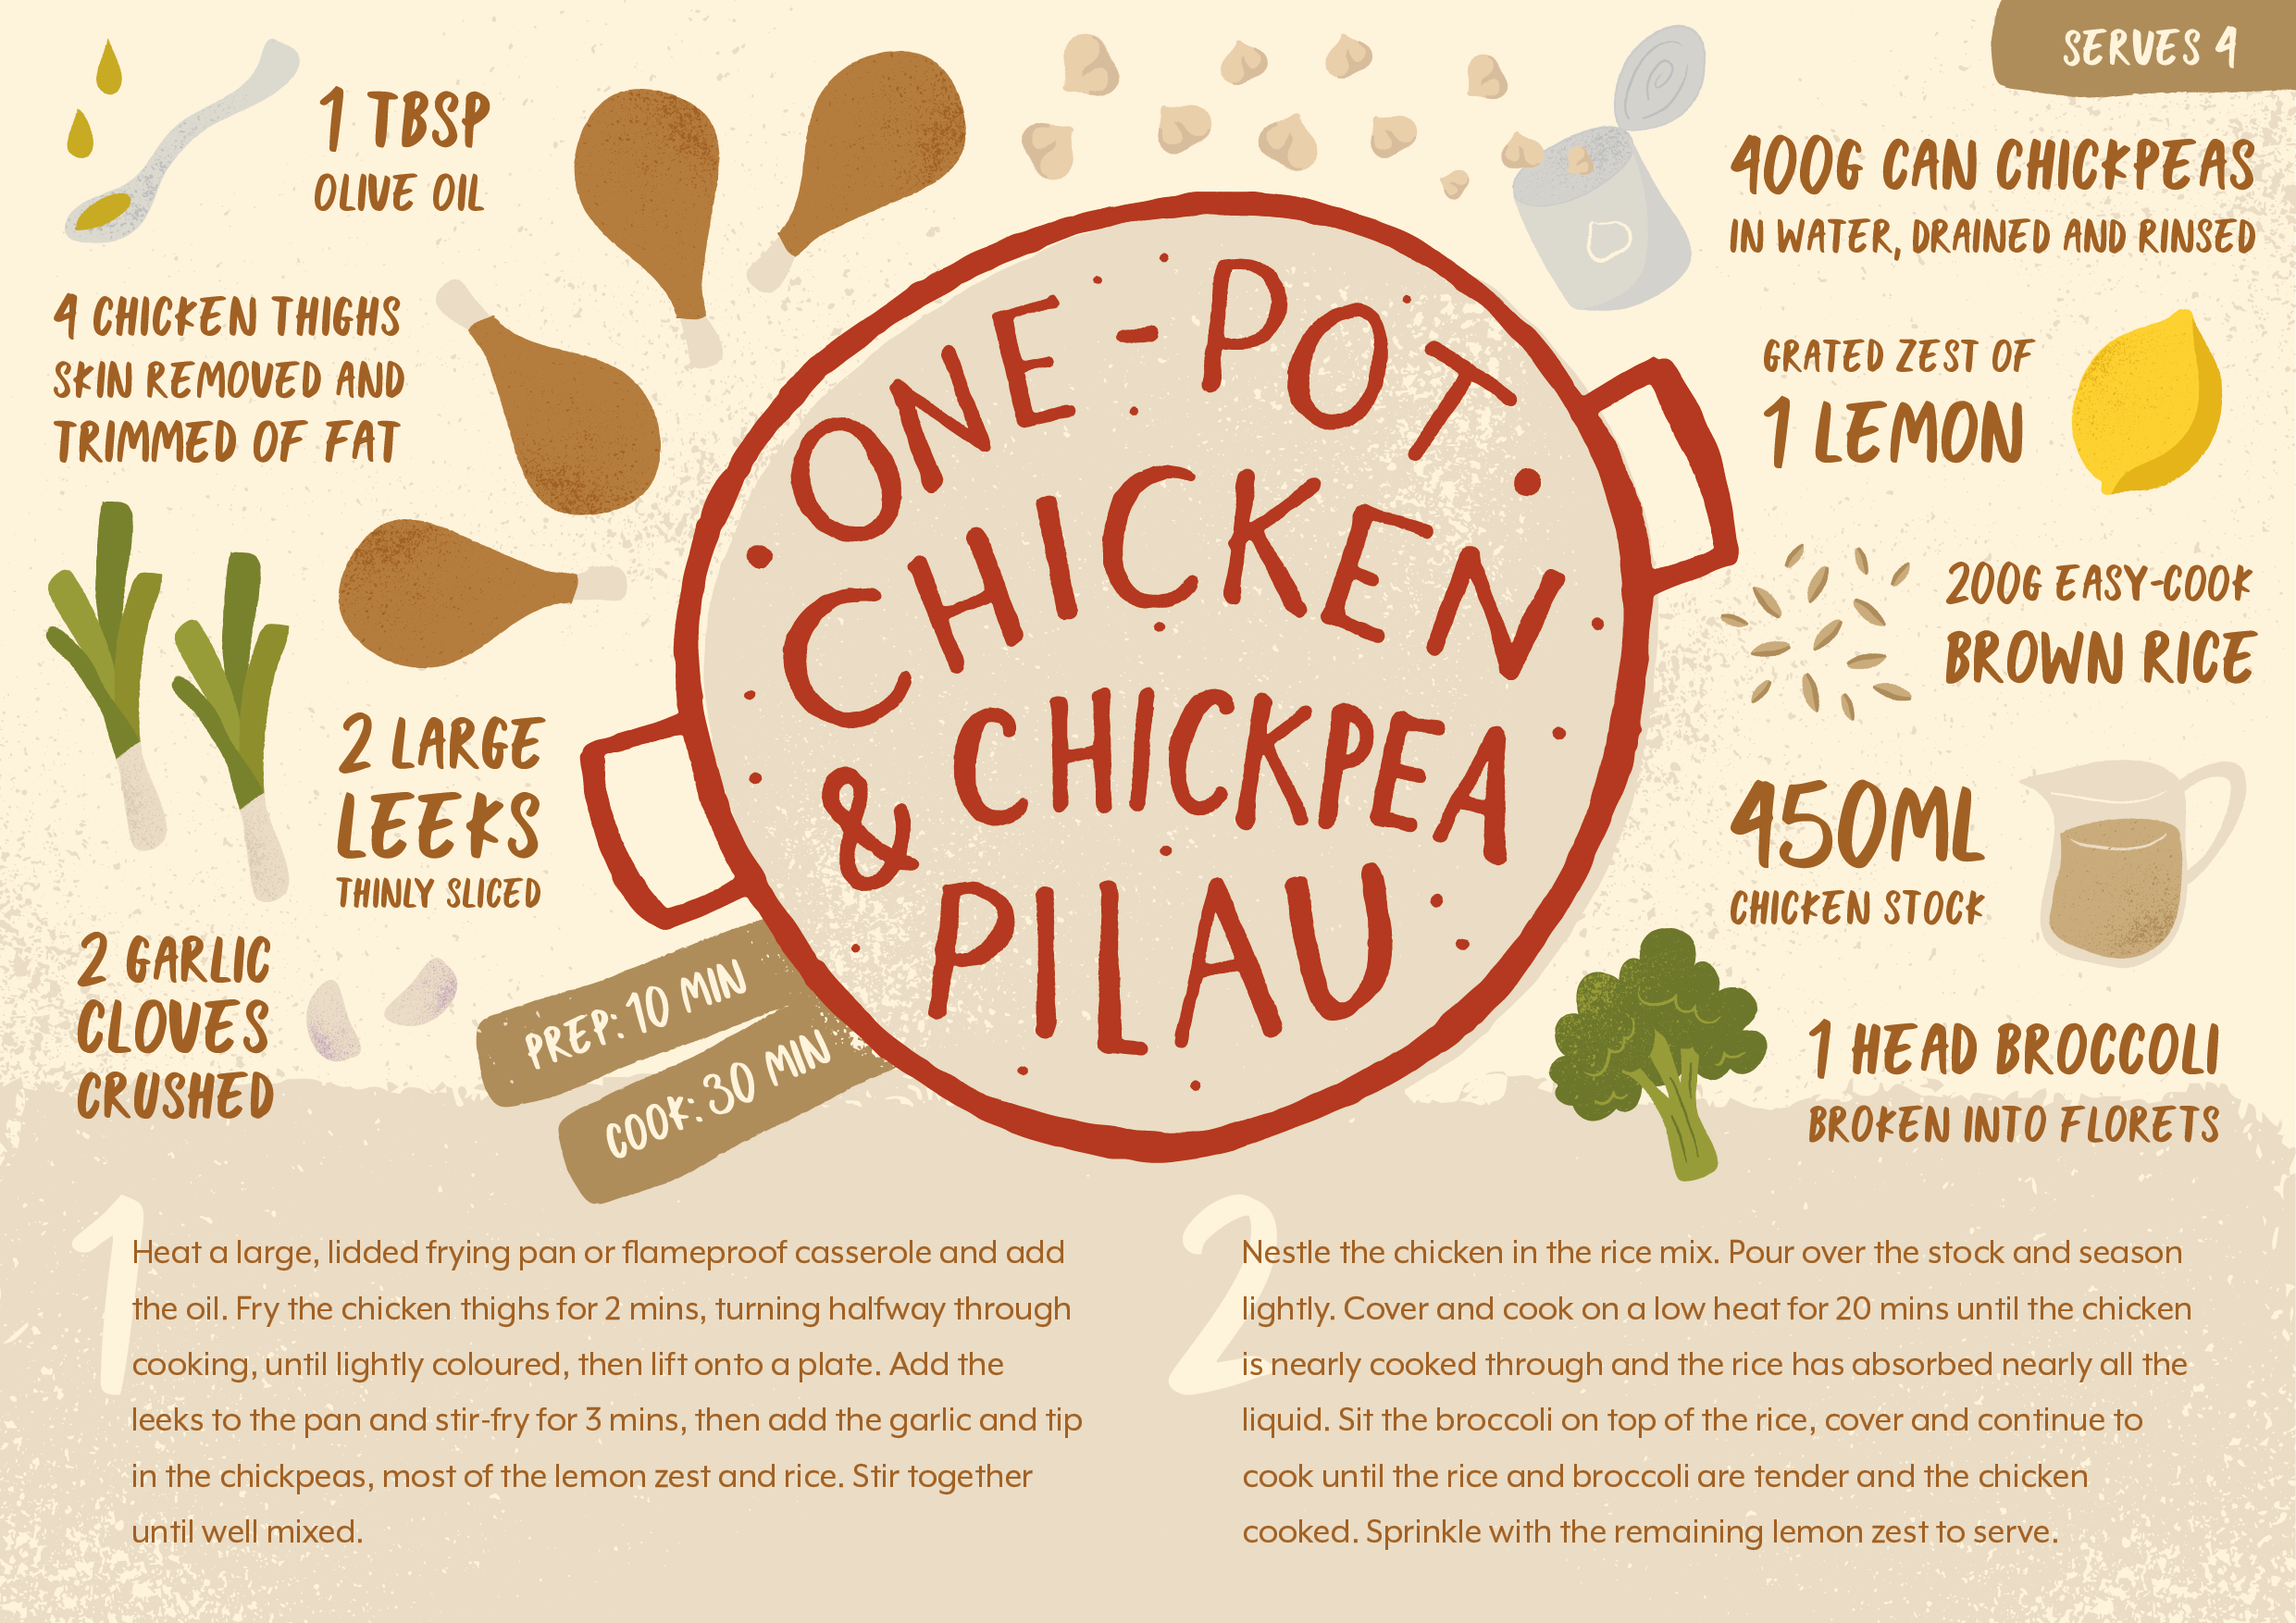 Our approach with a one pot chicken and chickpea pilau recipe card